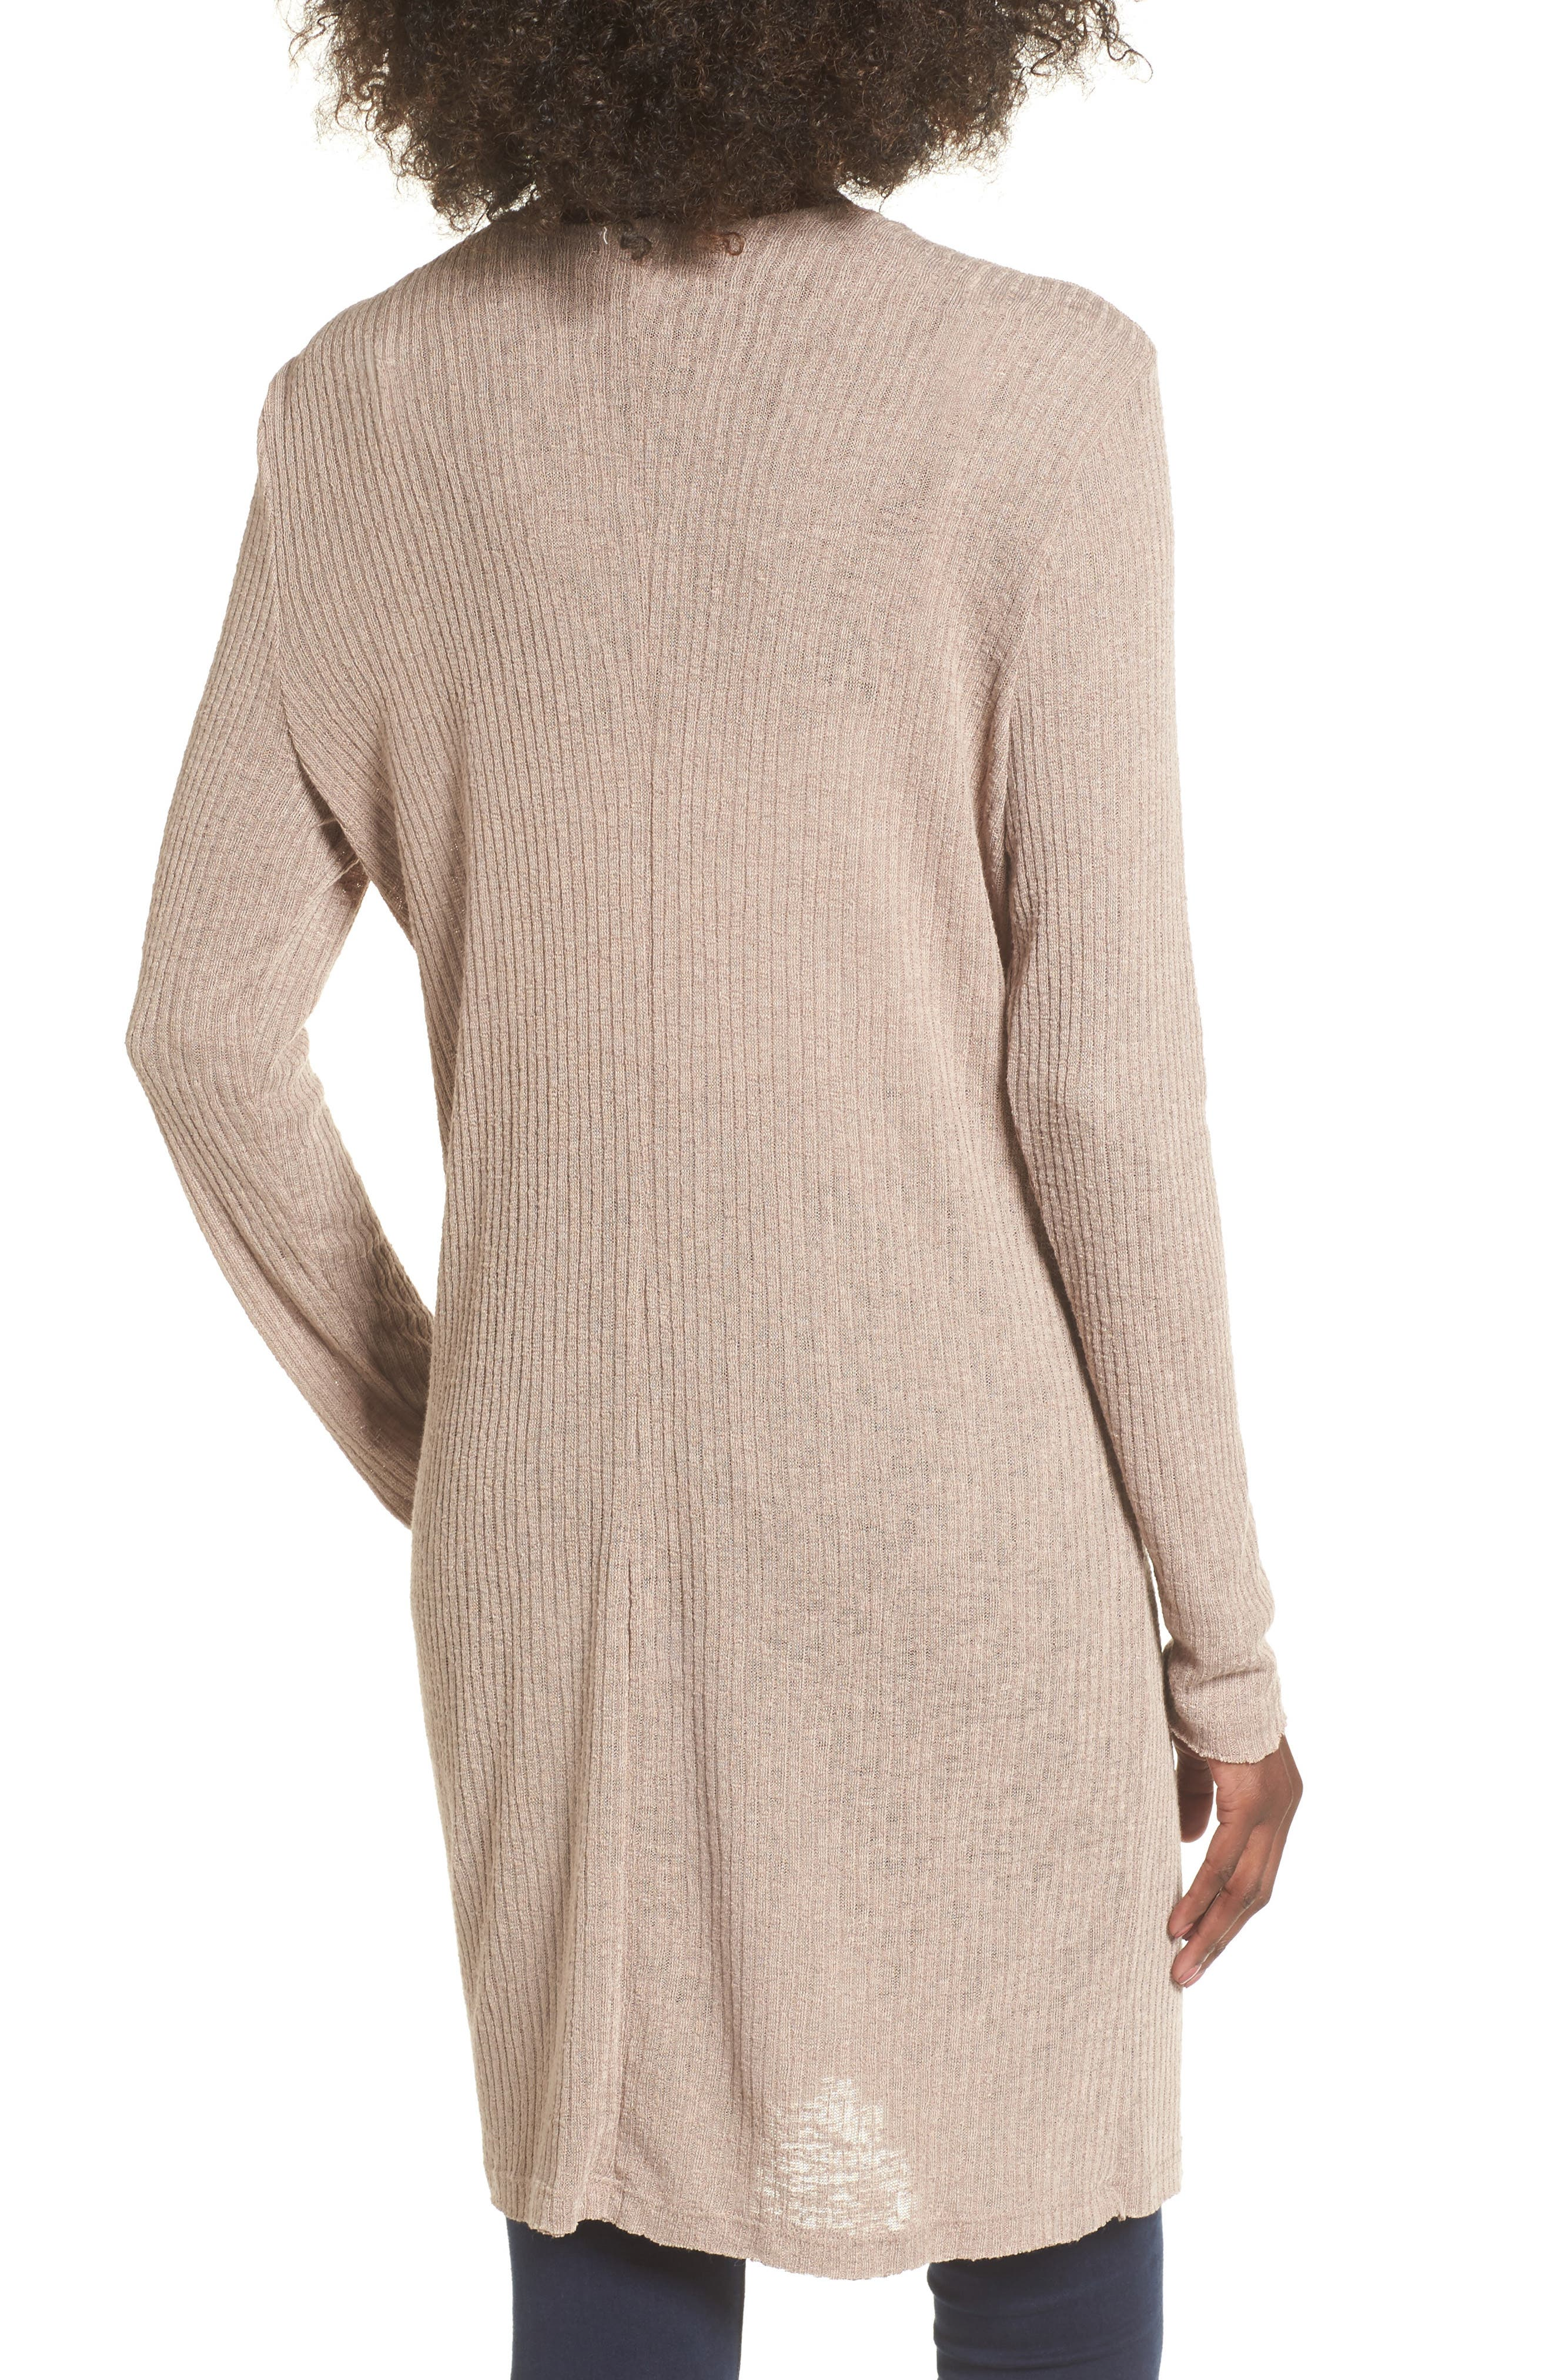 Ribbed Knit Cardigan,                             Alternate thumbnail 2, color,                             Beige Morn